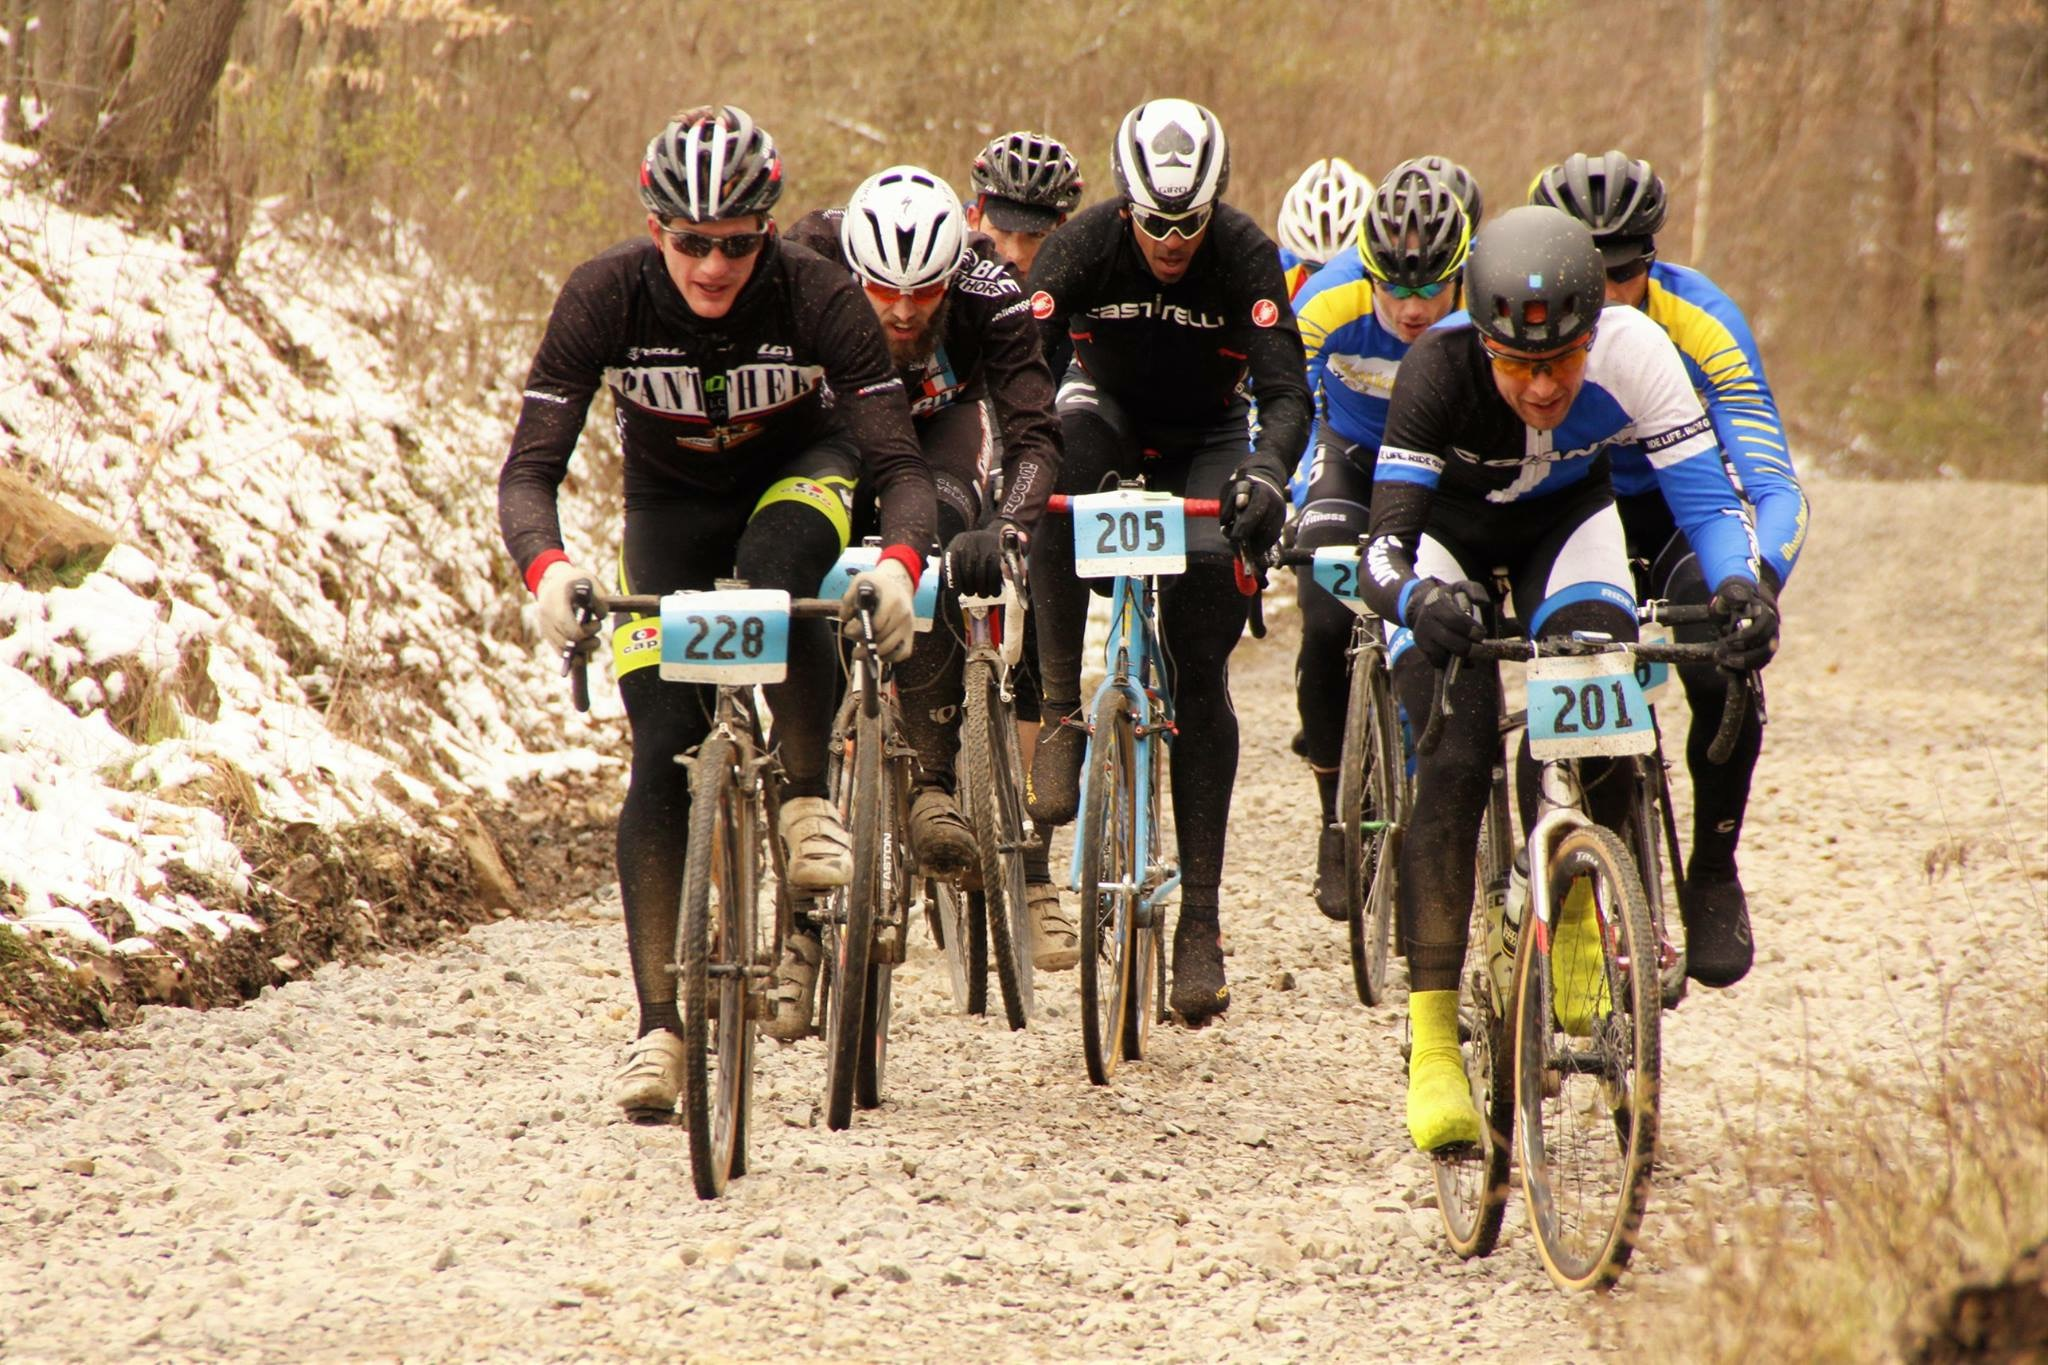 Point P Roubaix Mid Ohio Gravel Racing Continues At The Amish Country Roubaix